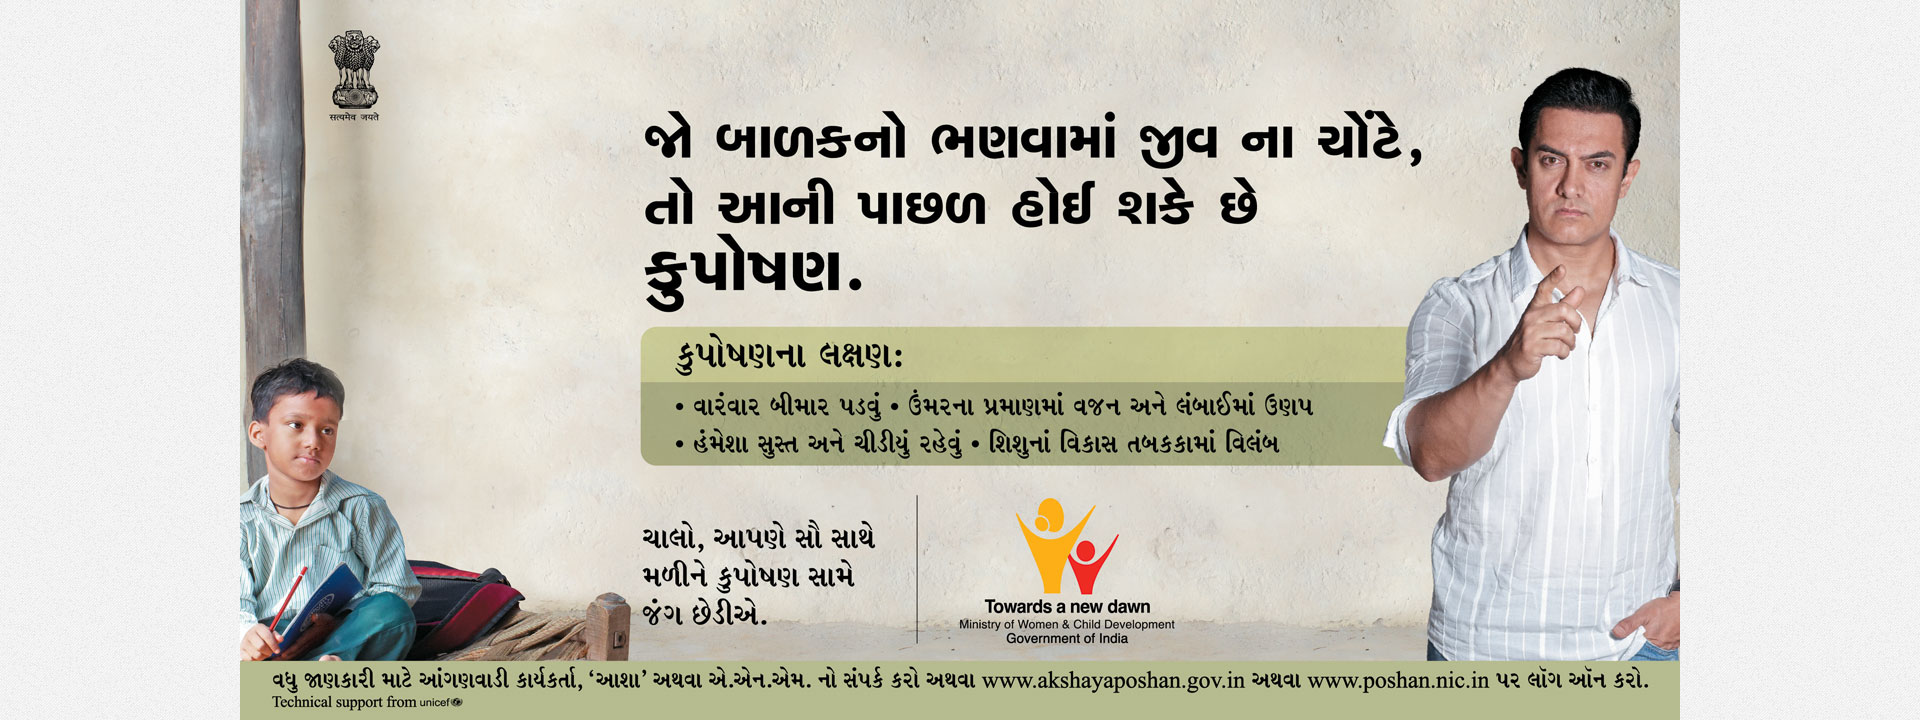 Gujarati - ગુજરાતી | Poshan | Nutrition, Food, Poverty ...